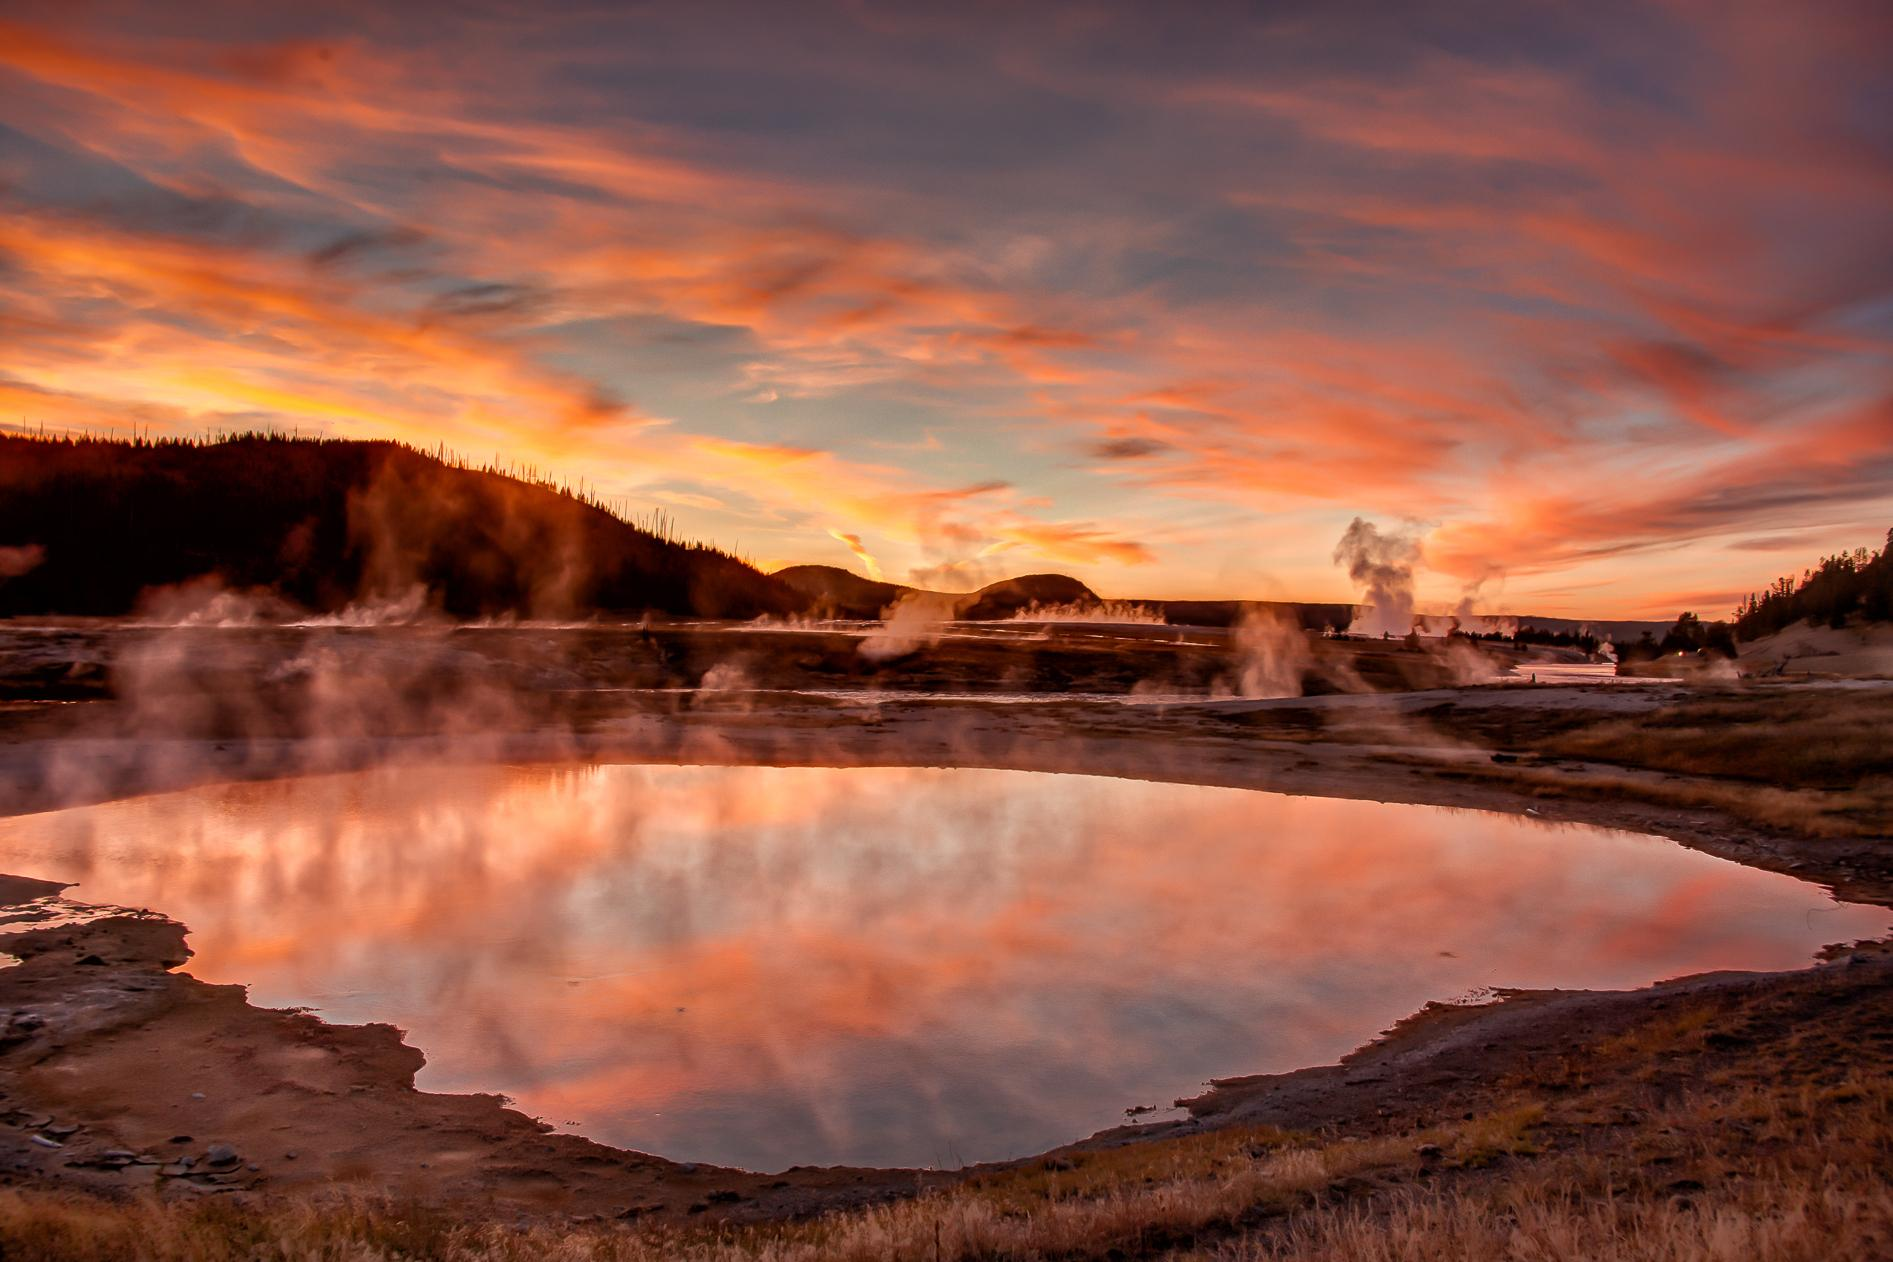 yellowstone national park chat sites Yellowstone national park tourism: tripadvisor has 57,077 reviews of yellowstone national park hotels, attractions, and restaurants making it your best yellowstone national park resource.